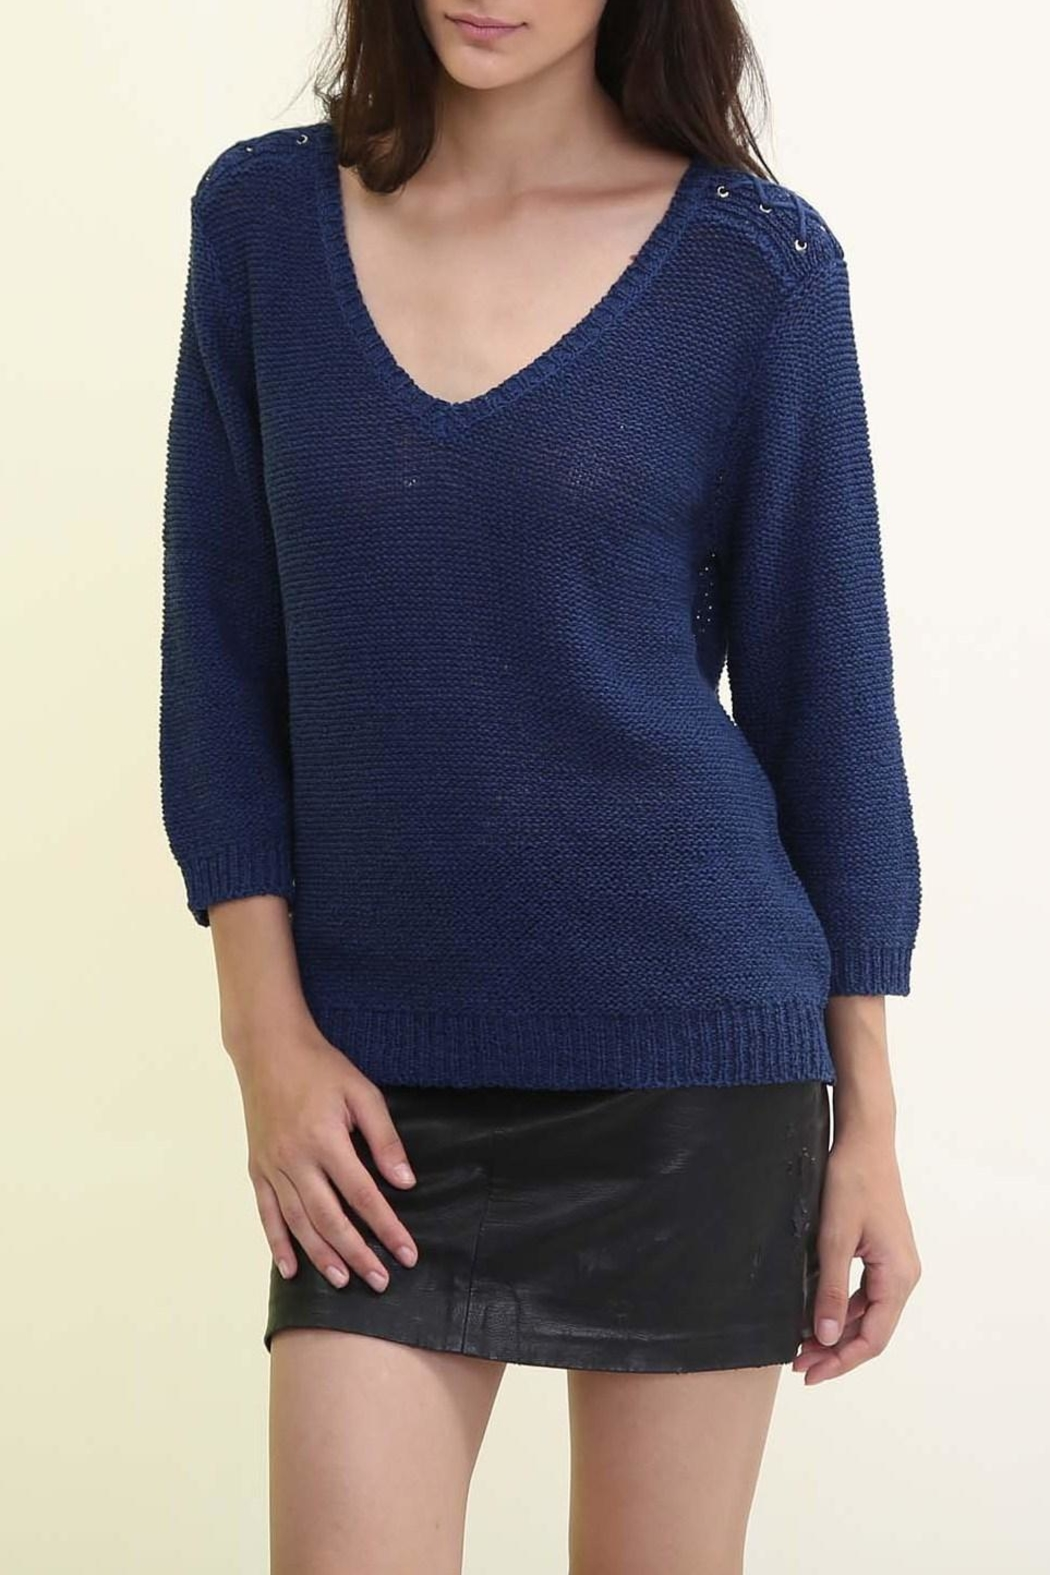 Maude Navy V Neck Sweater - Main Image